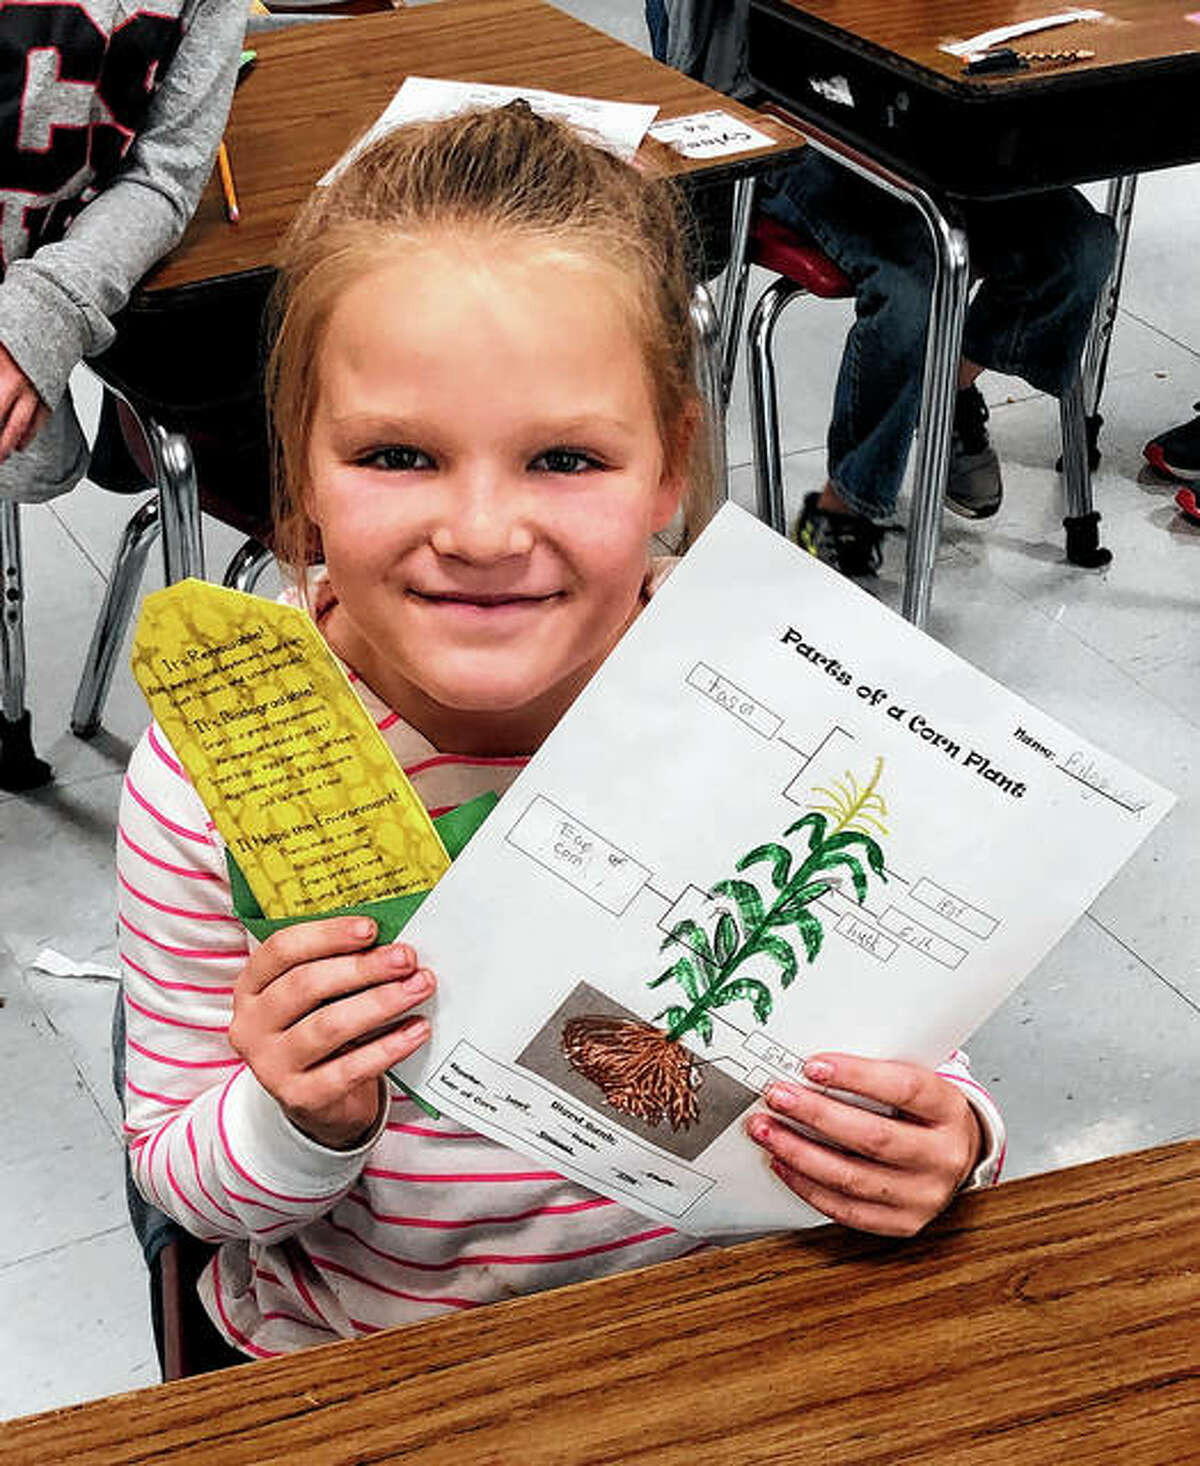 The Pike-Scott Agriculture in the Classroom program recently visited Pikeland Community School, where students learned all about corn, including parts of the corn plant, how corn is grown, different types of corn, foods containing corn and the many uses for the various types of corn. Mrs. Allen's student: Raleigh Willard of Mrs. Allen's class shows off her corn-themed crafts.